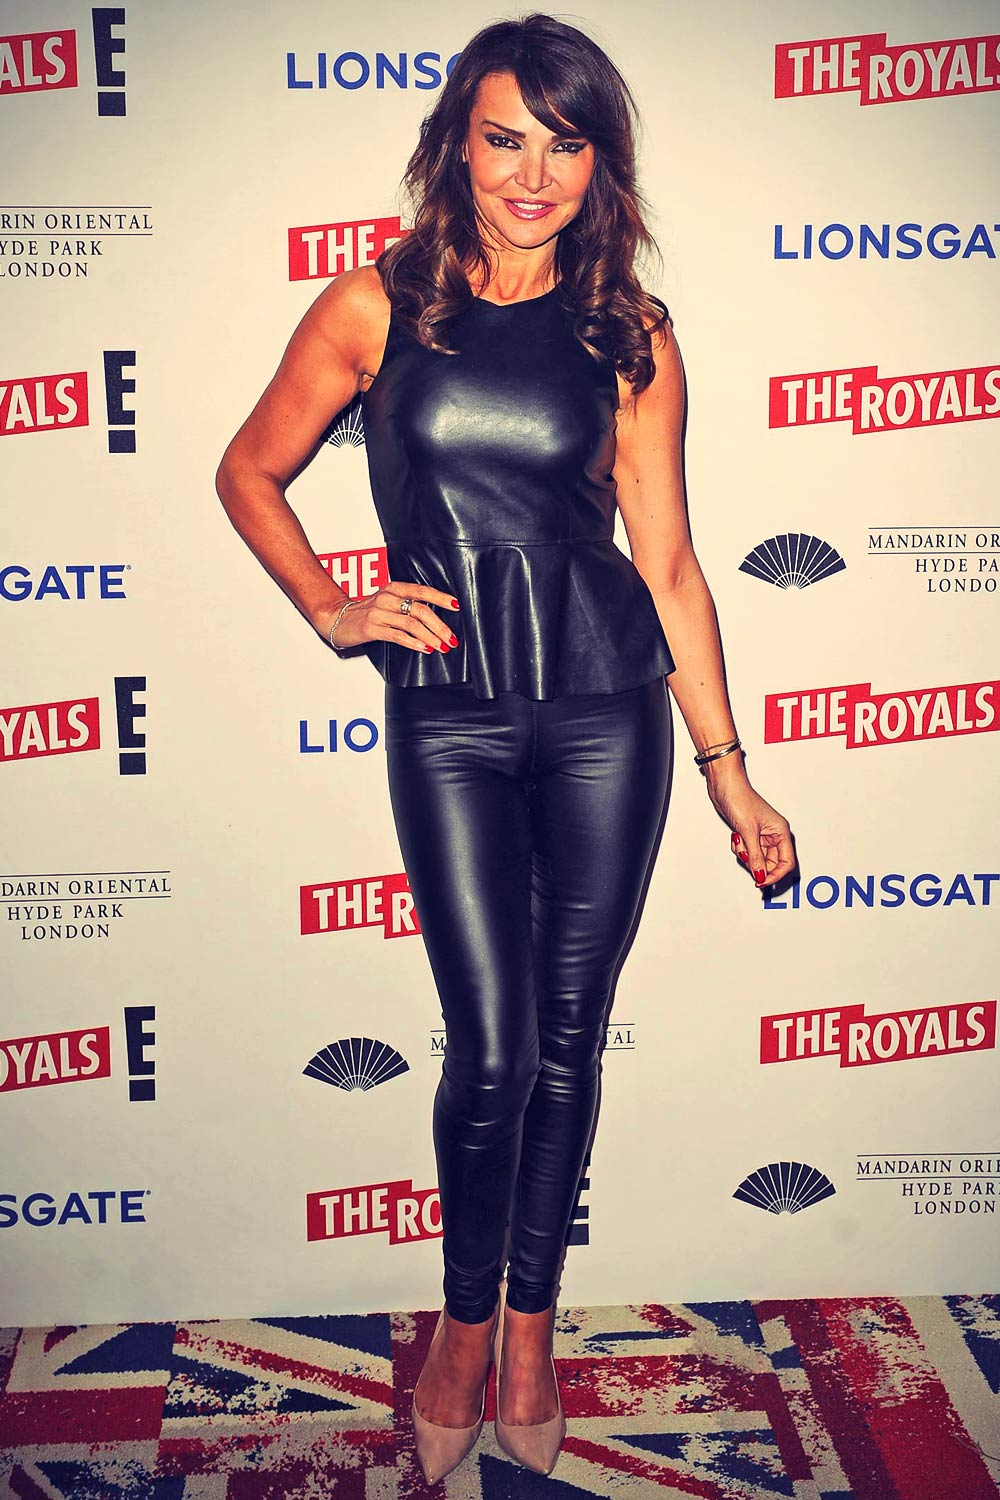 Lizzie Cundy attends The Royals E! UK Premiere